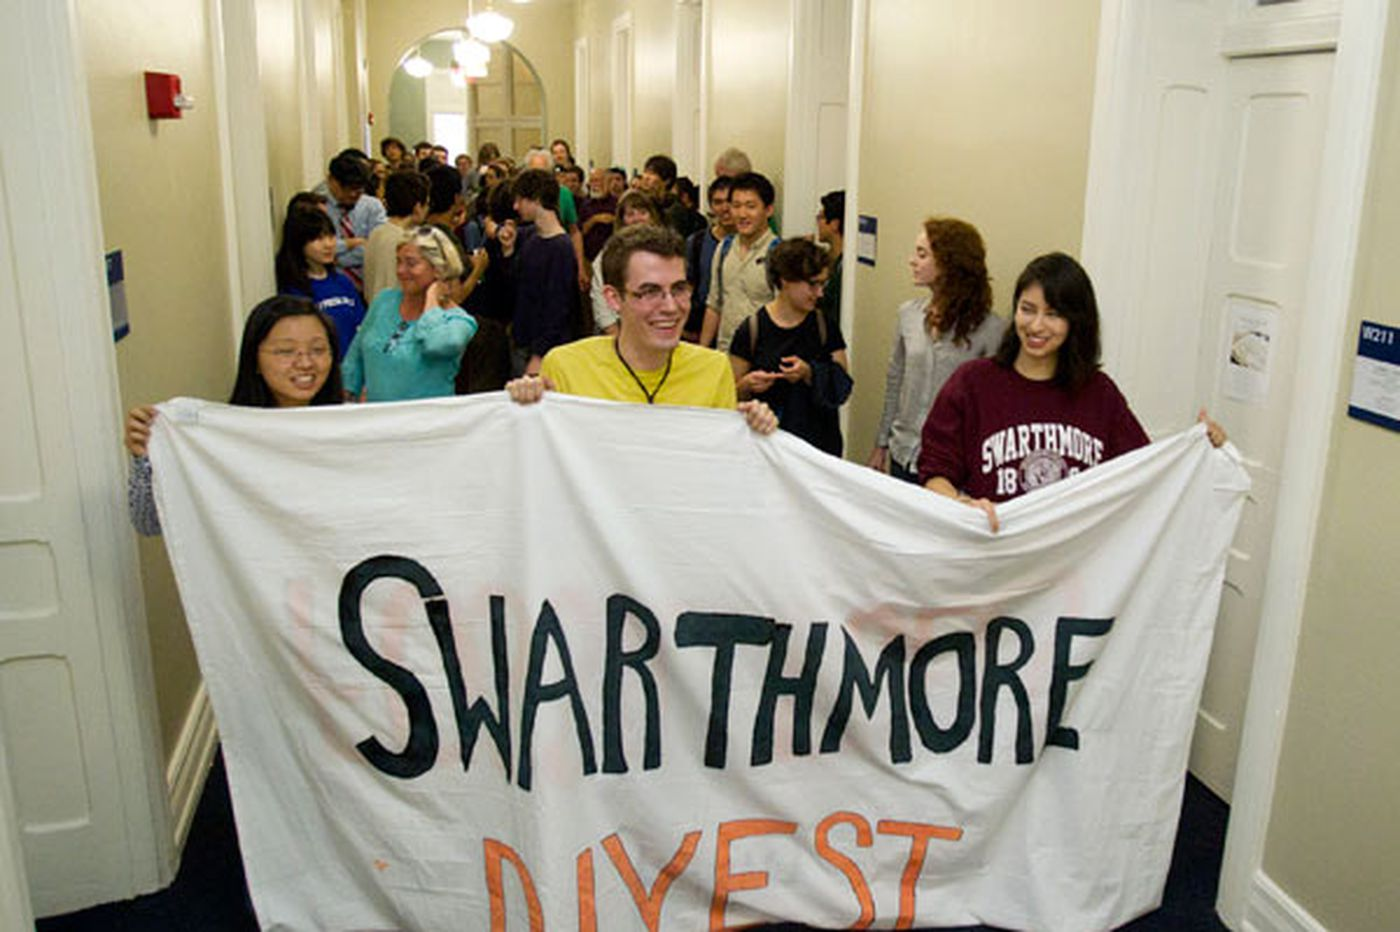 Swarthmore chooses not to divest fossil-fuel endowment